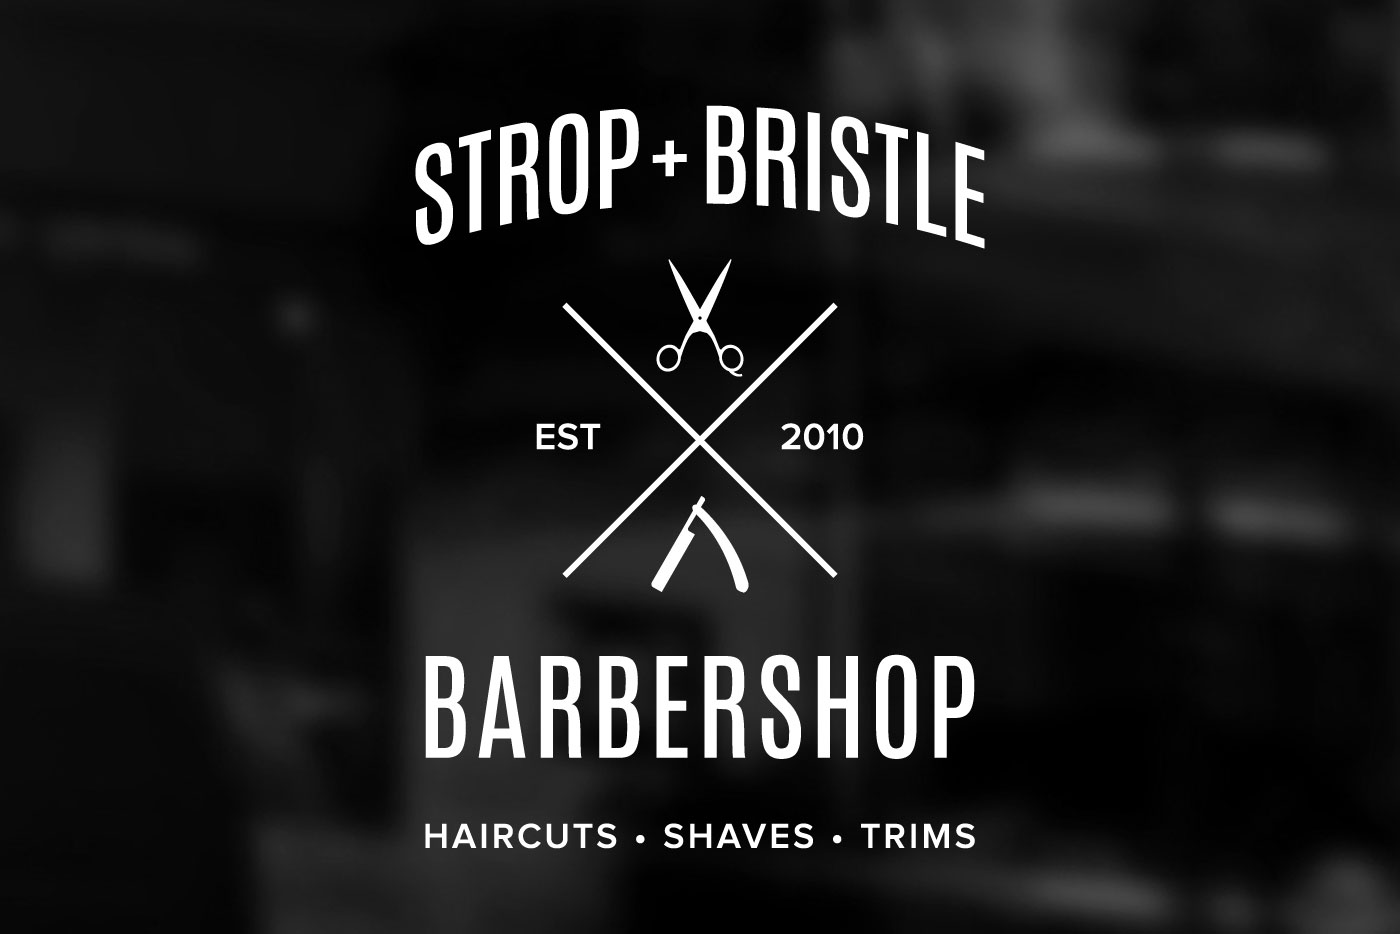 barbershop logo sign